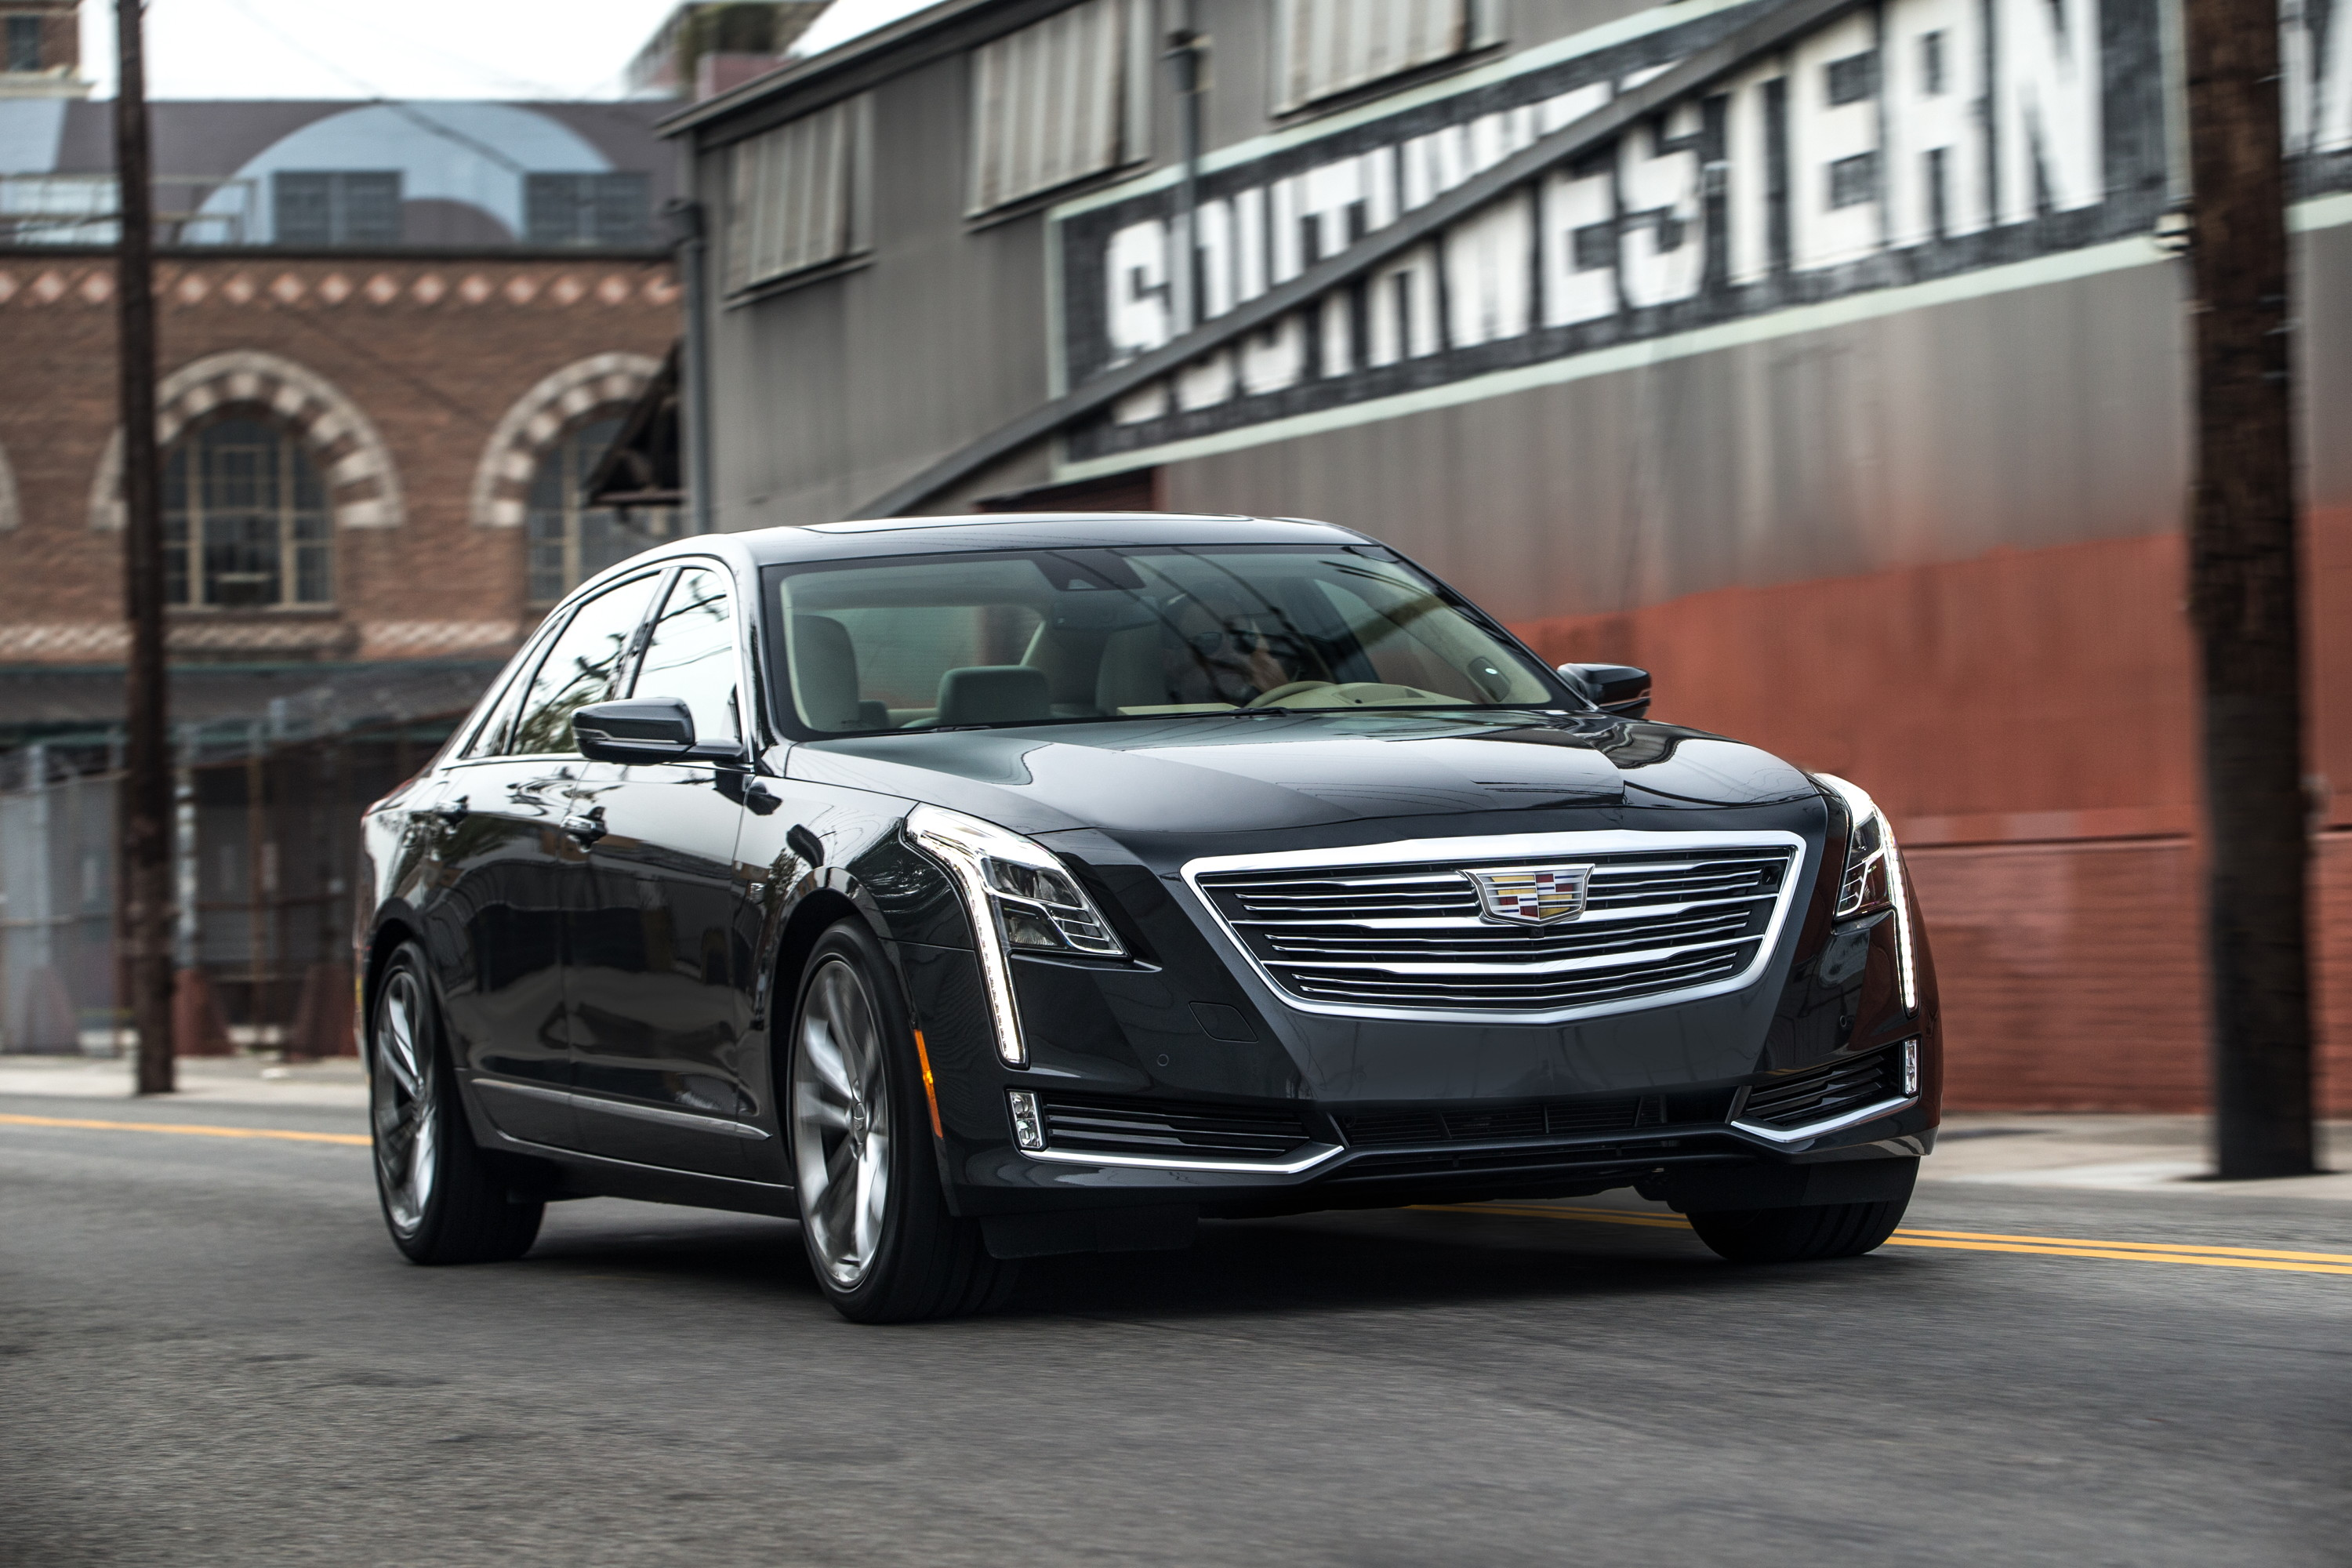 Cadillac CT6 Updated for 2017 MY, Twin-Turbo LT5 V8 Nowhere In Sight